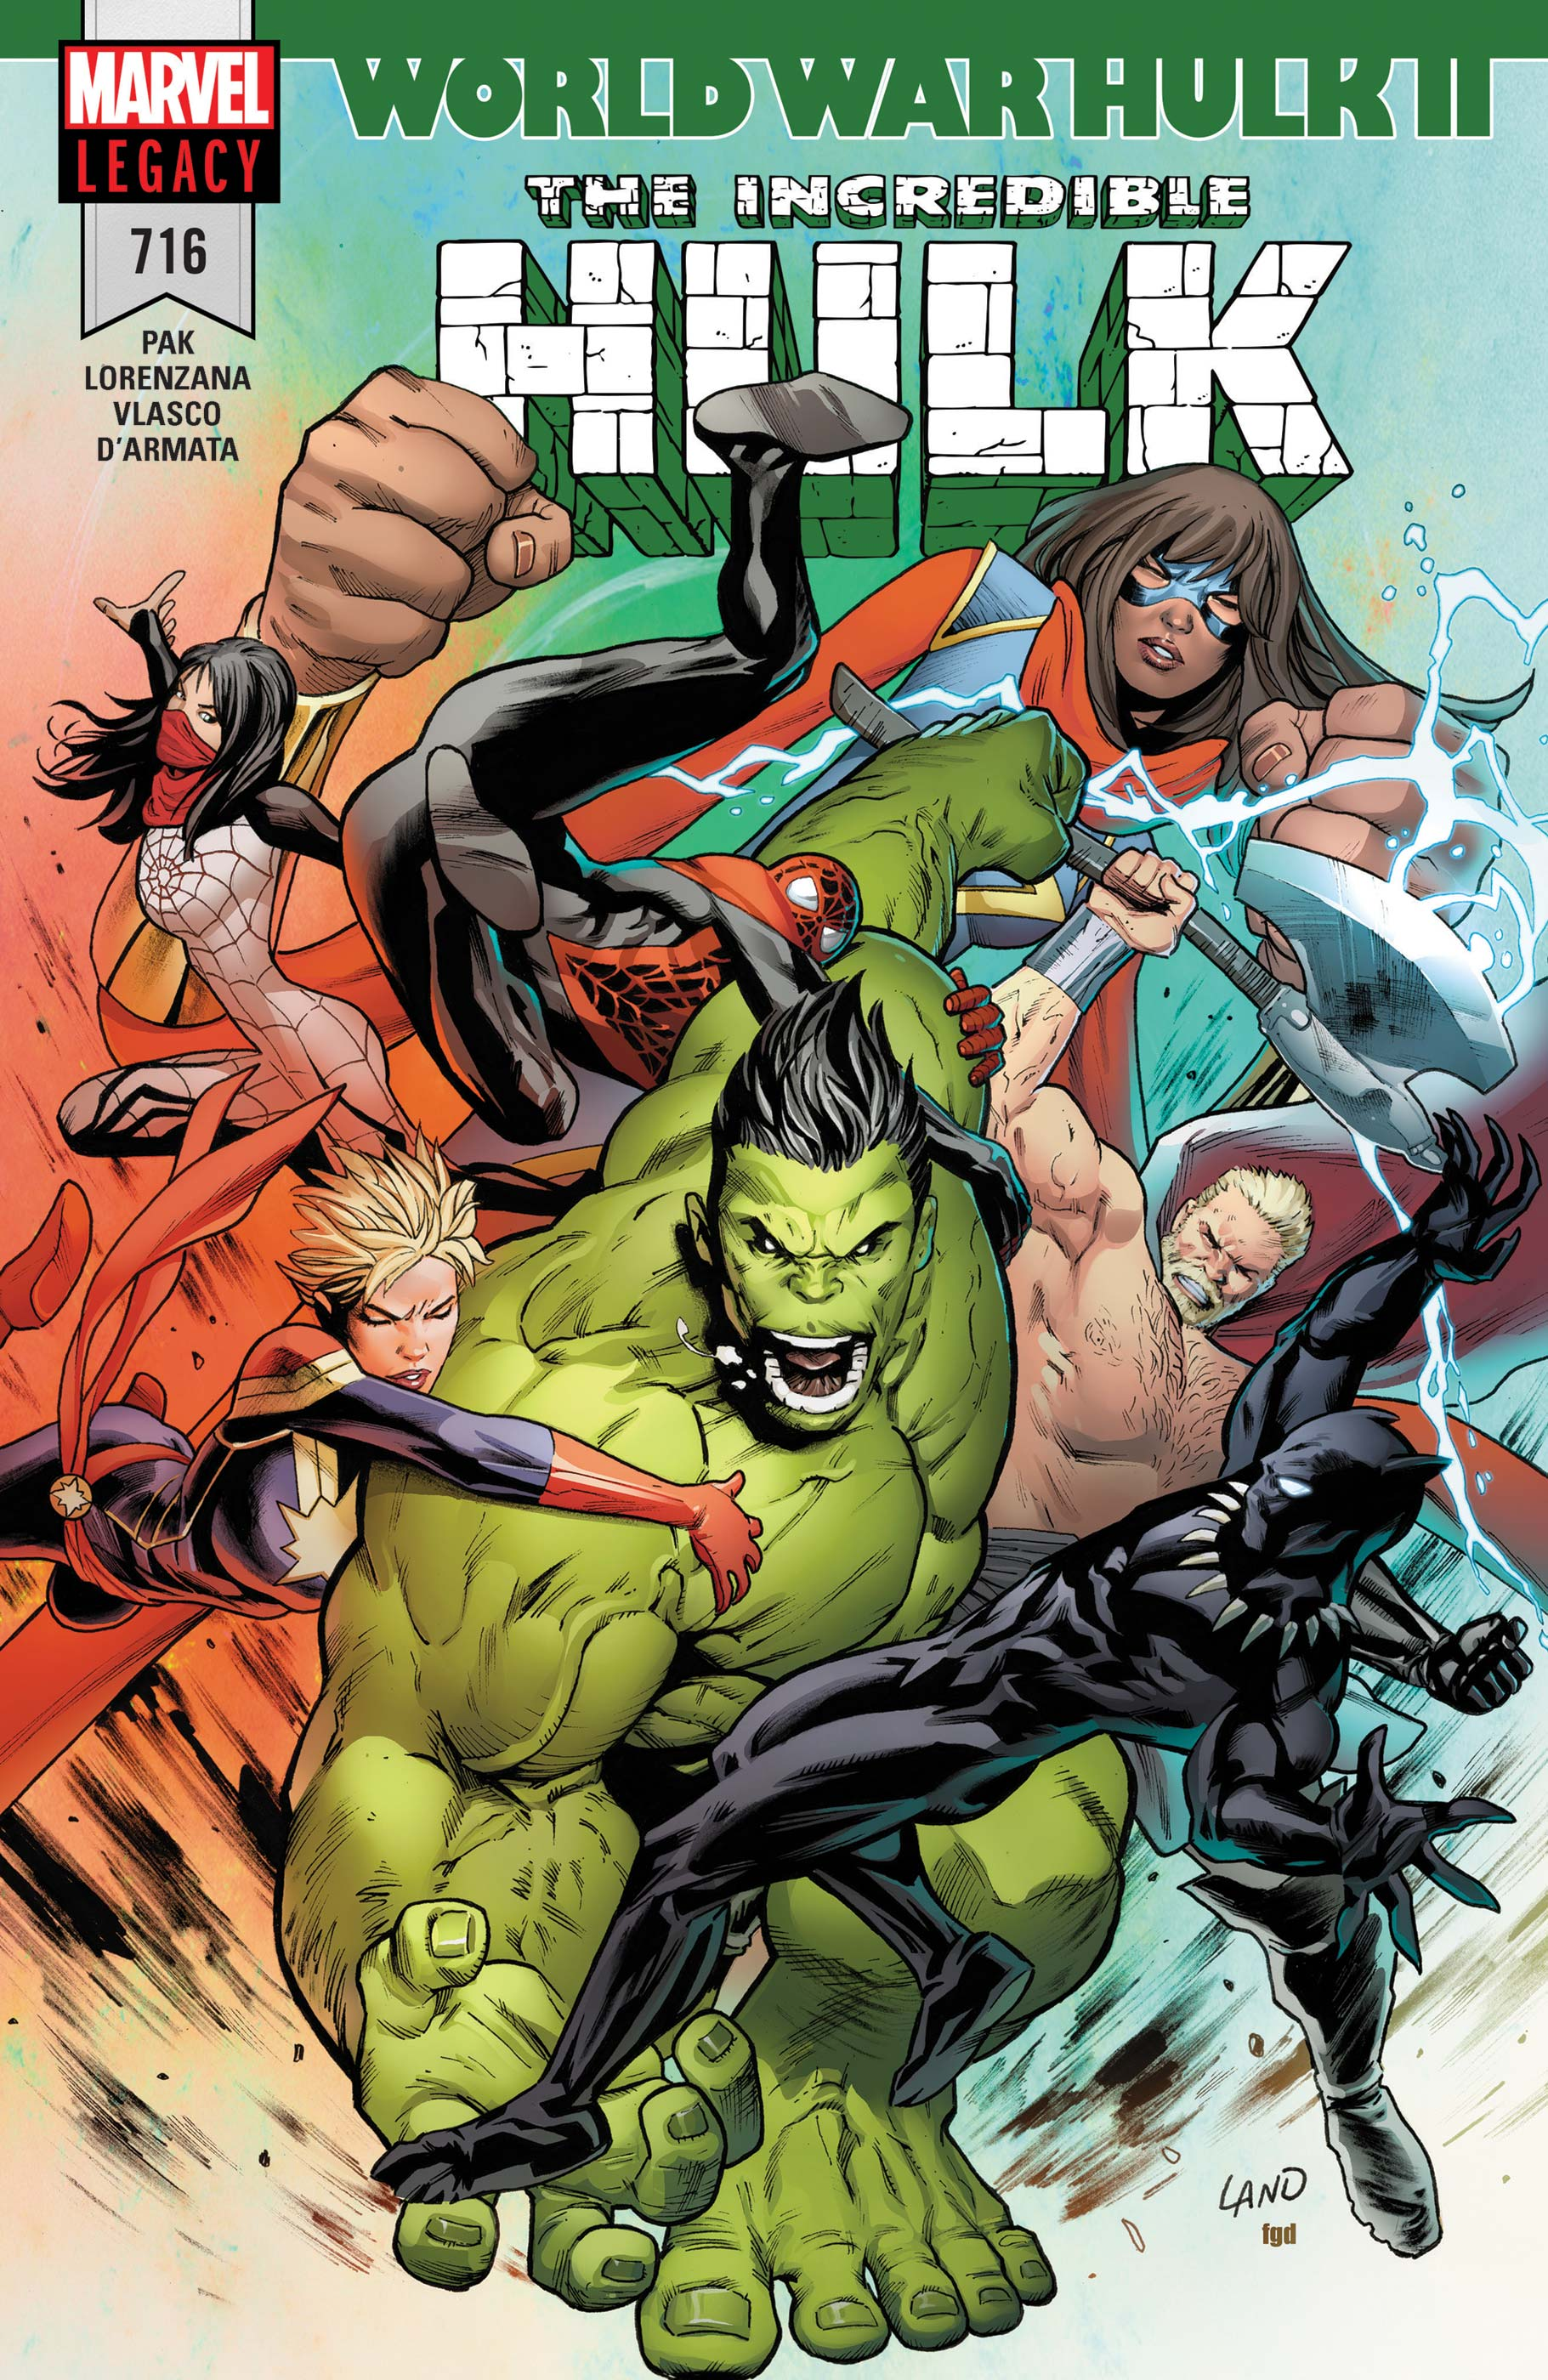 Incredible Hulk (2017) #716